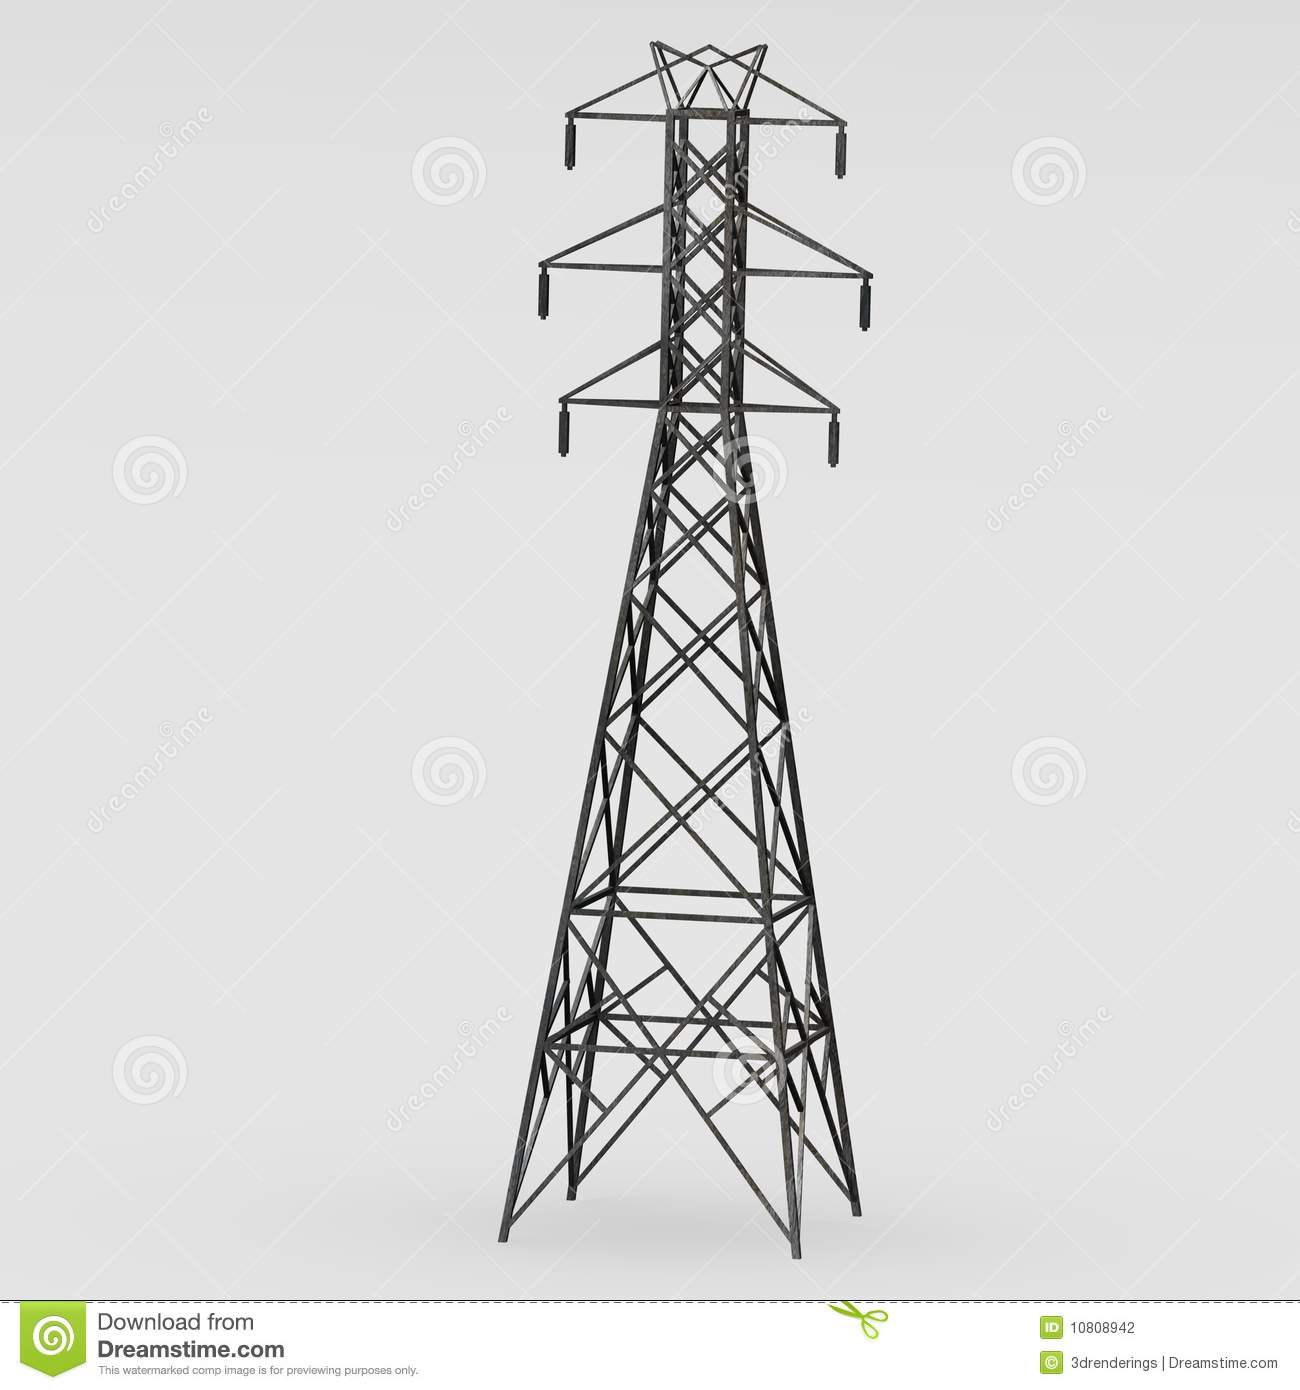 Power Line clipart #12, Download drawings